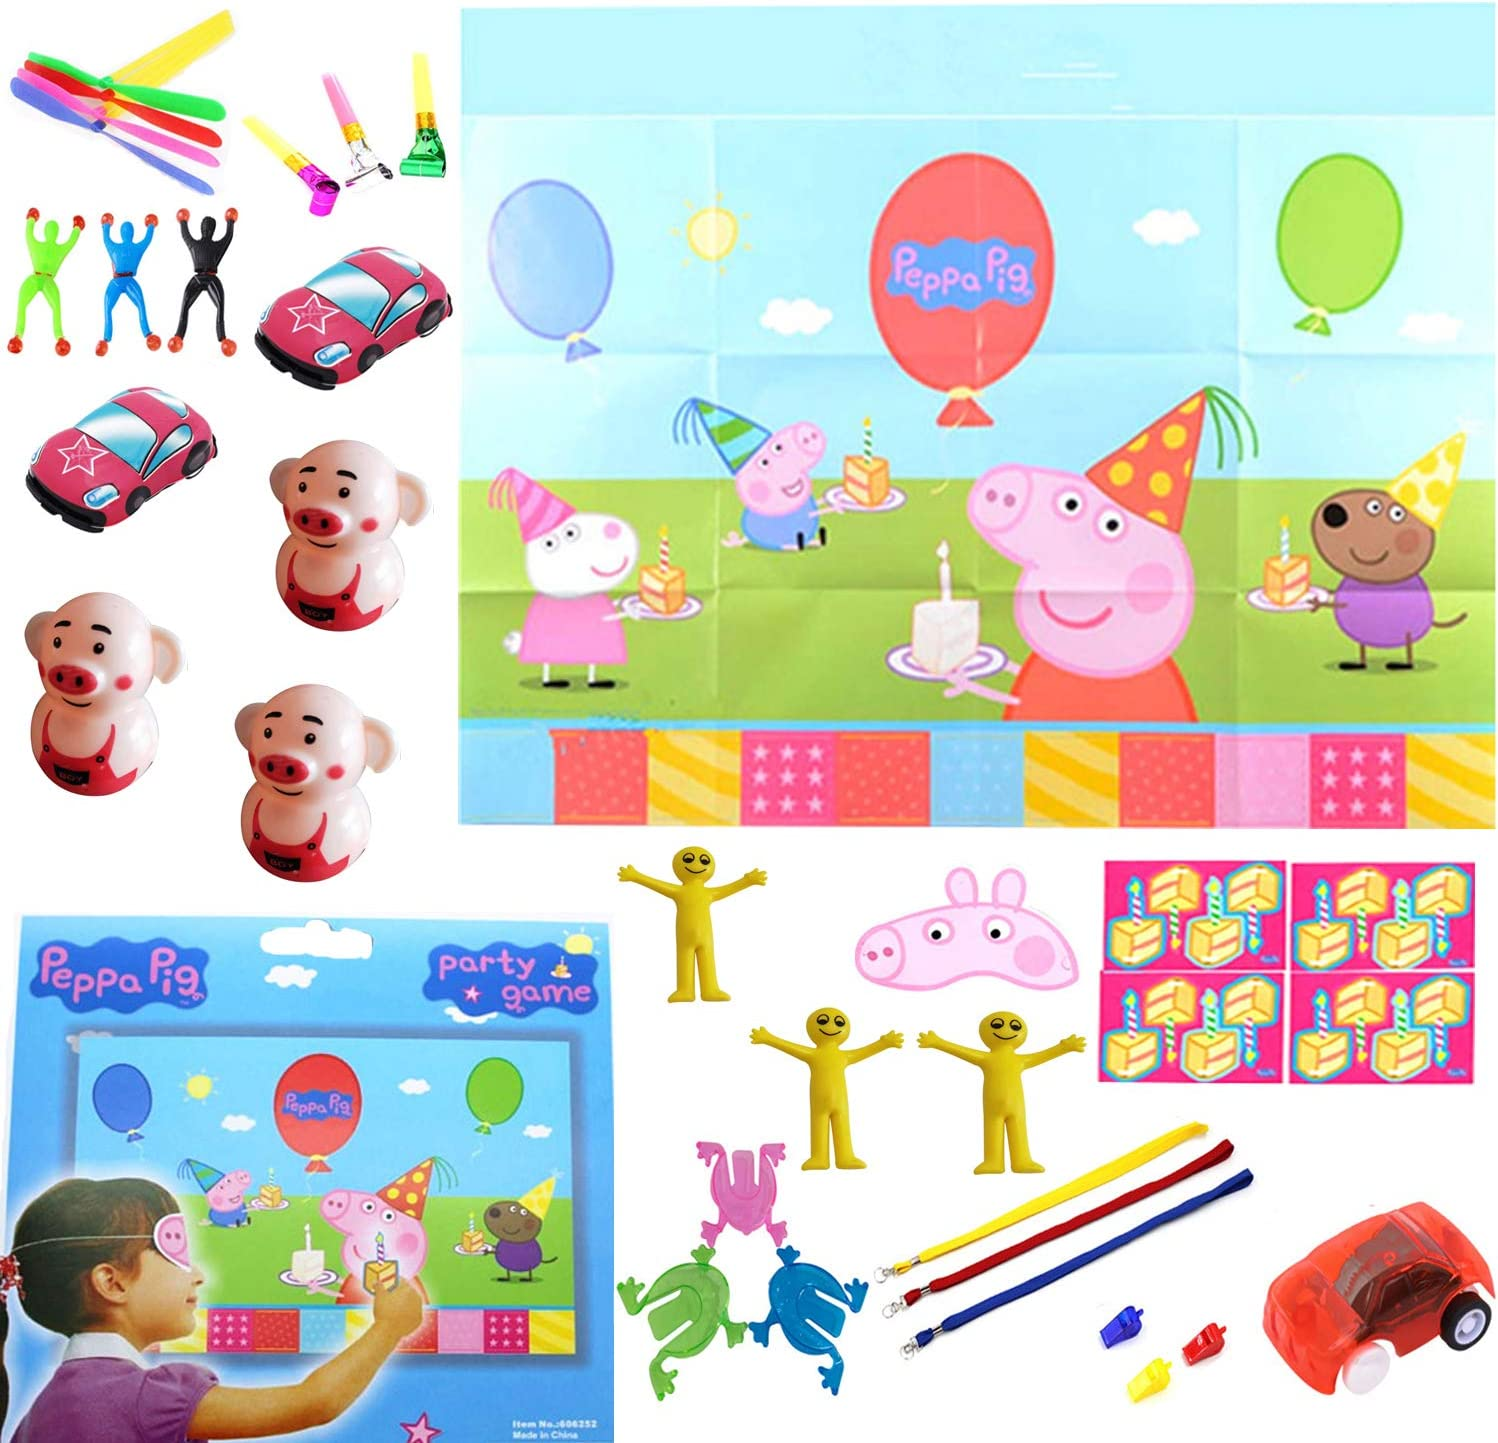 Amazon Com Party Games For Kids Pin The Cake On The Peppa Pig Game Halloween Christmas Party Favors Decorations Activities With 18pcs Free Awards Toys Games